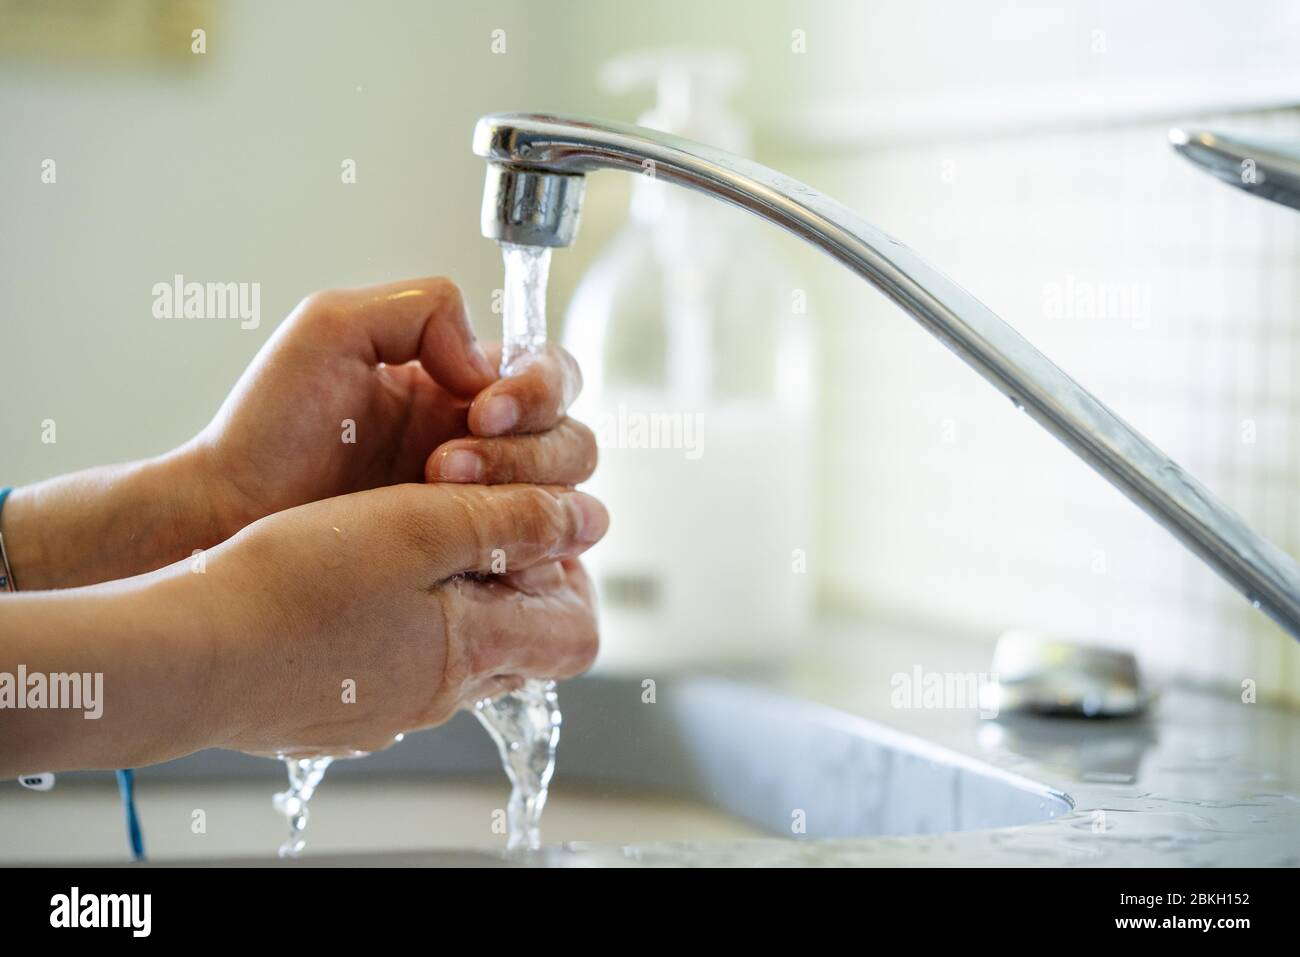 Woman washing hands with water in bathroom sink Stock Photo